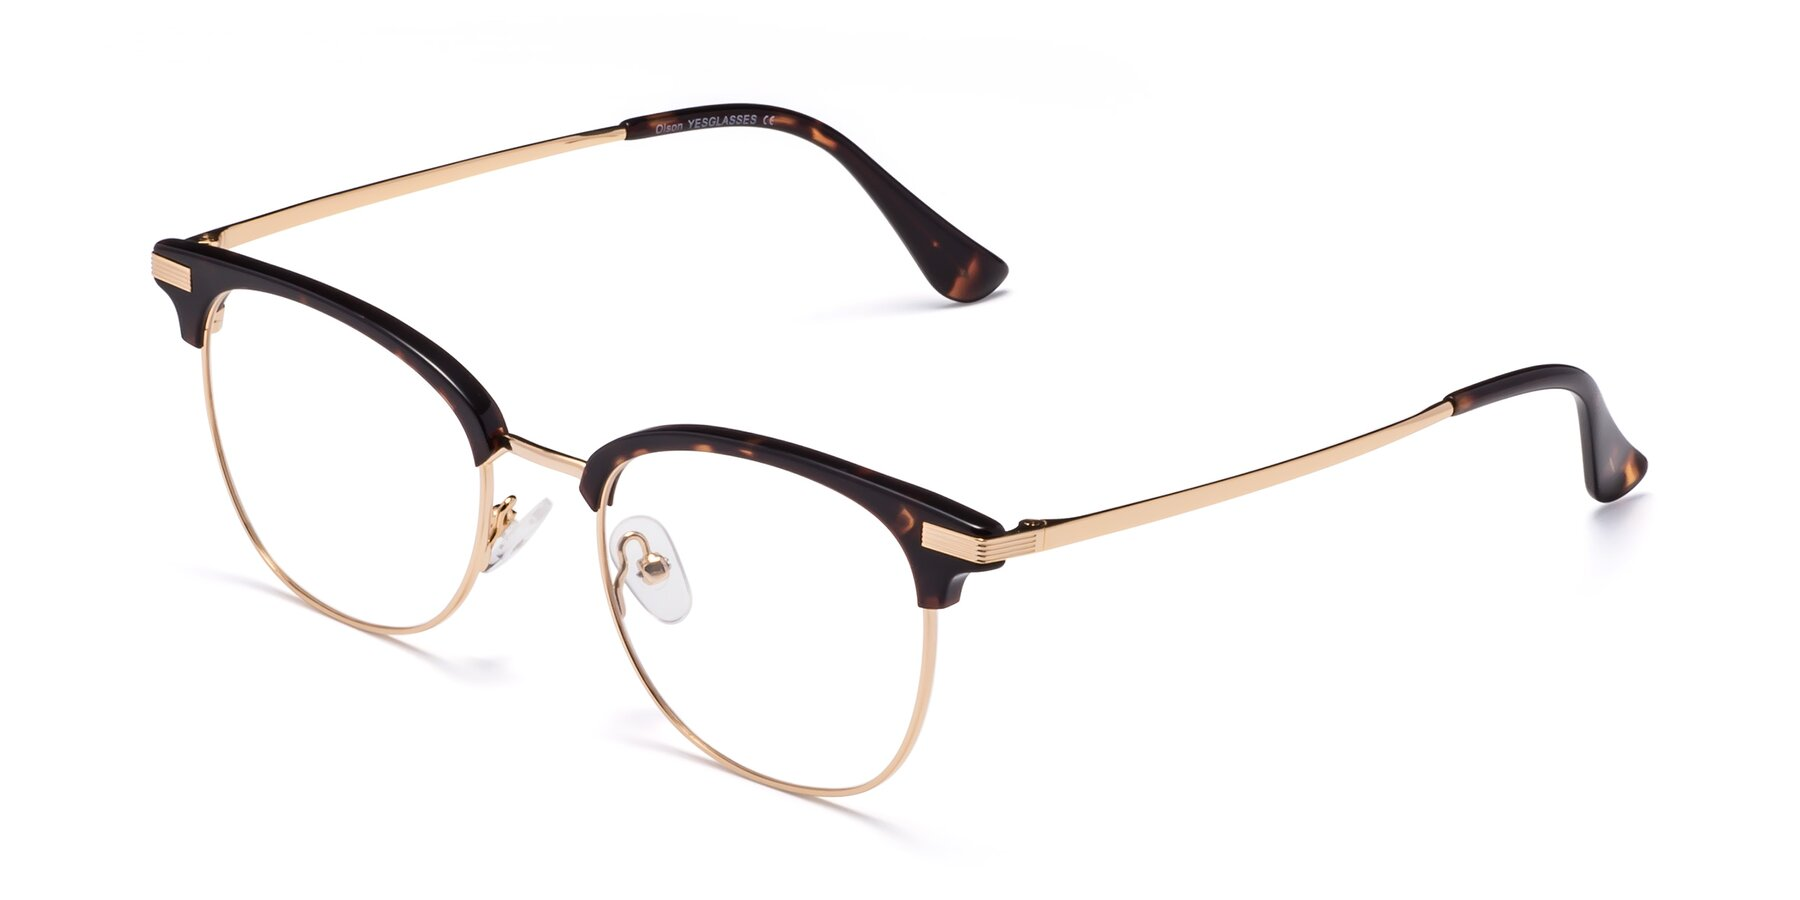 Angle of Olson in Tortoise-Gold with Clear Eyeglass Lenses